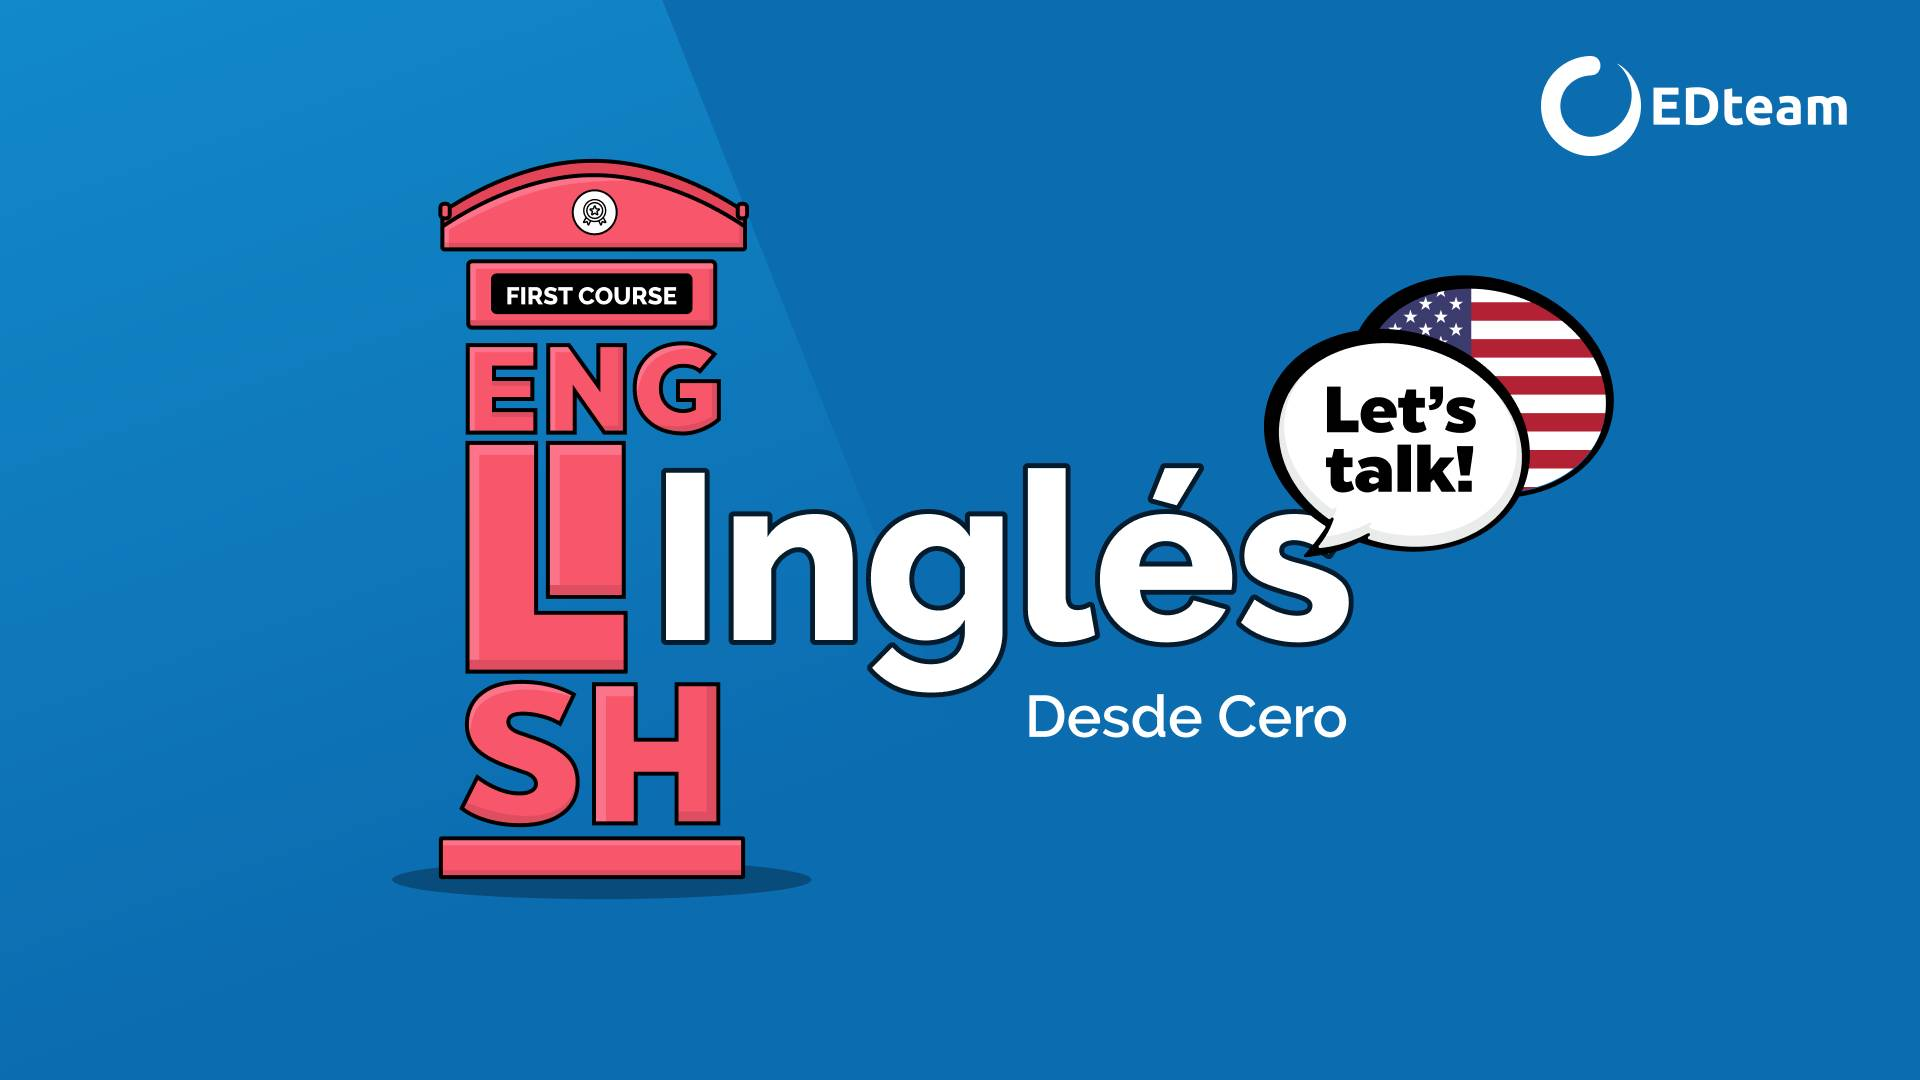 1.2 - Greetings and useful phrases (Saludos y frases útiles)